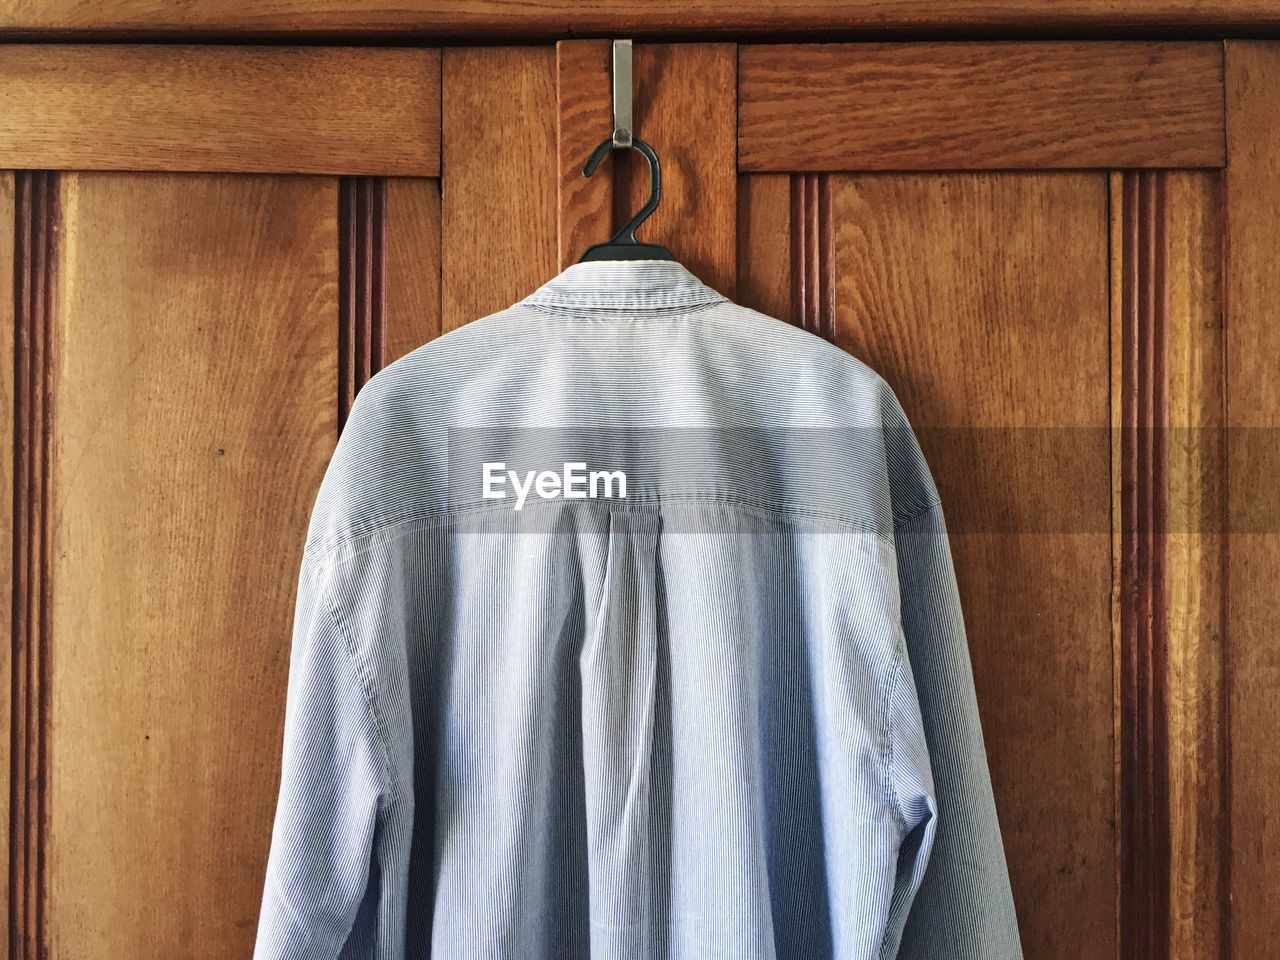 Gray Shirt On Coathanger Hanging From Wooden Cabinet